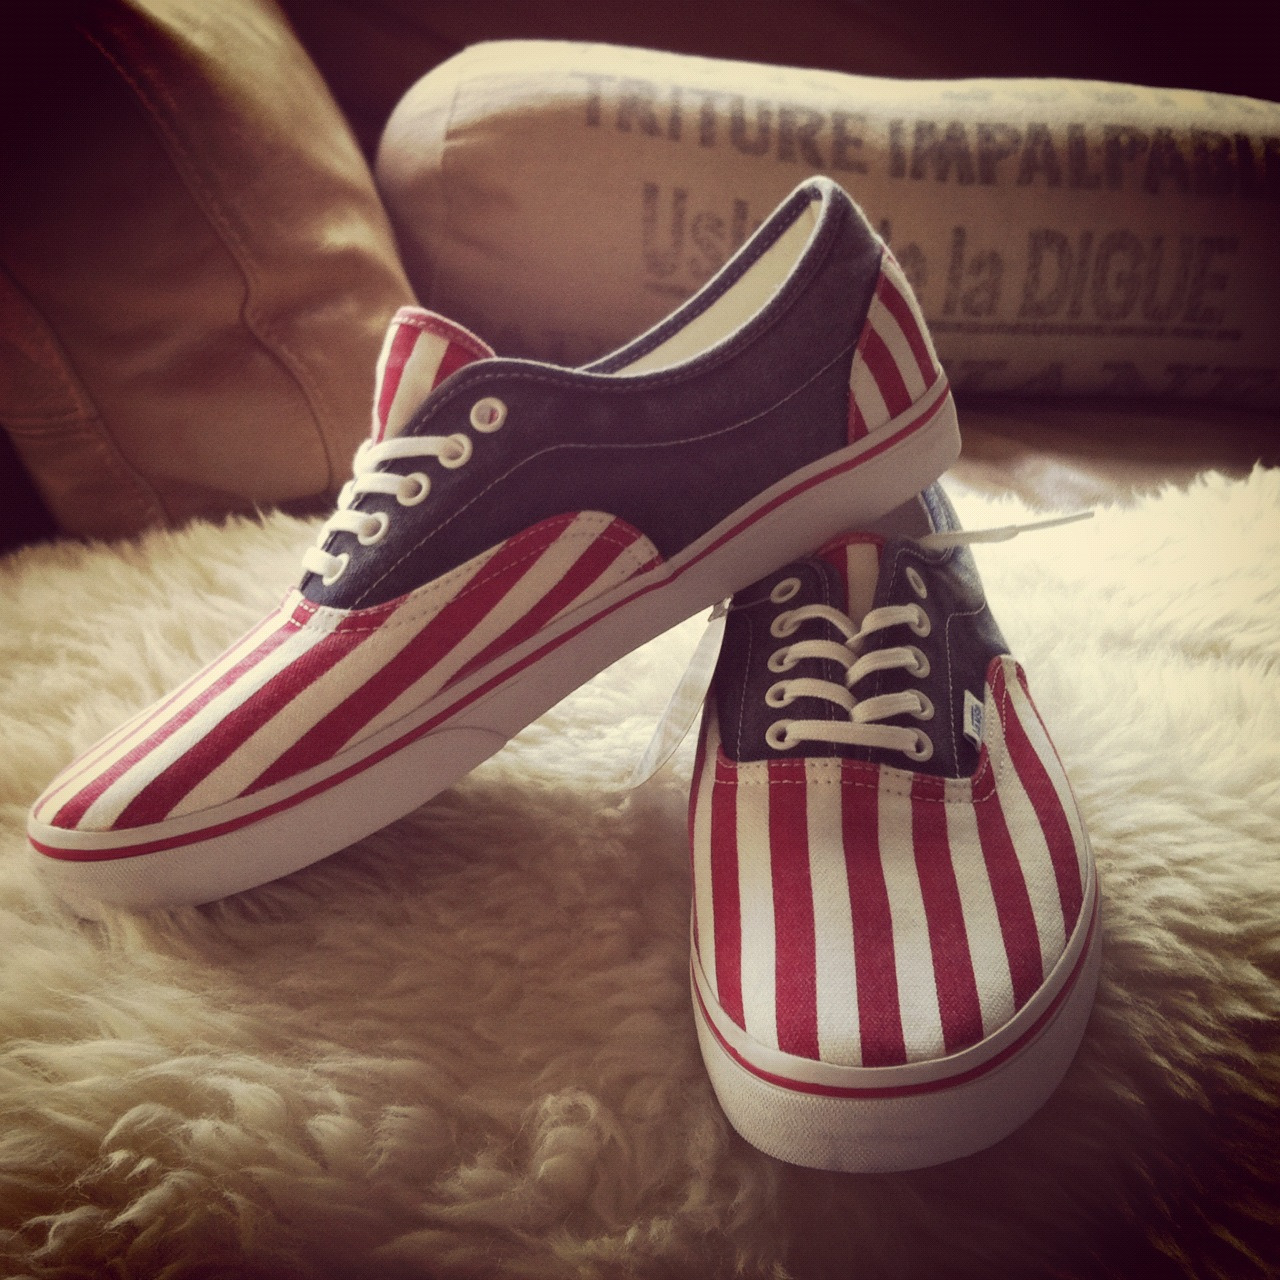 okayimkindofawesome:  My new Vans just arrived! I love them!